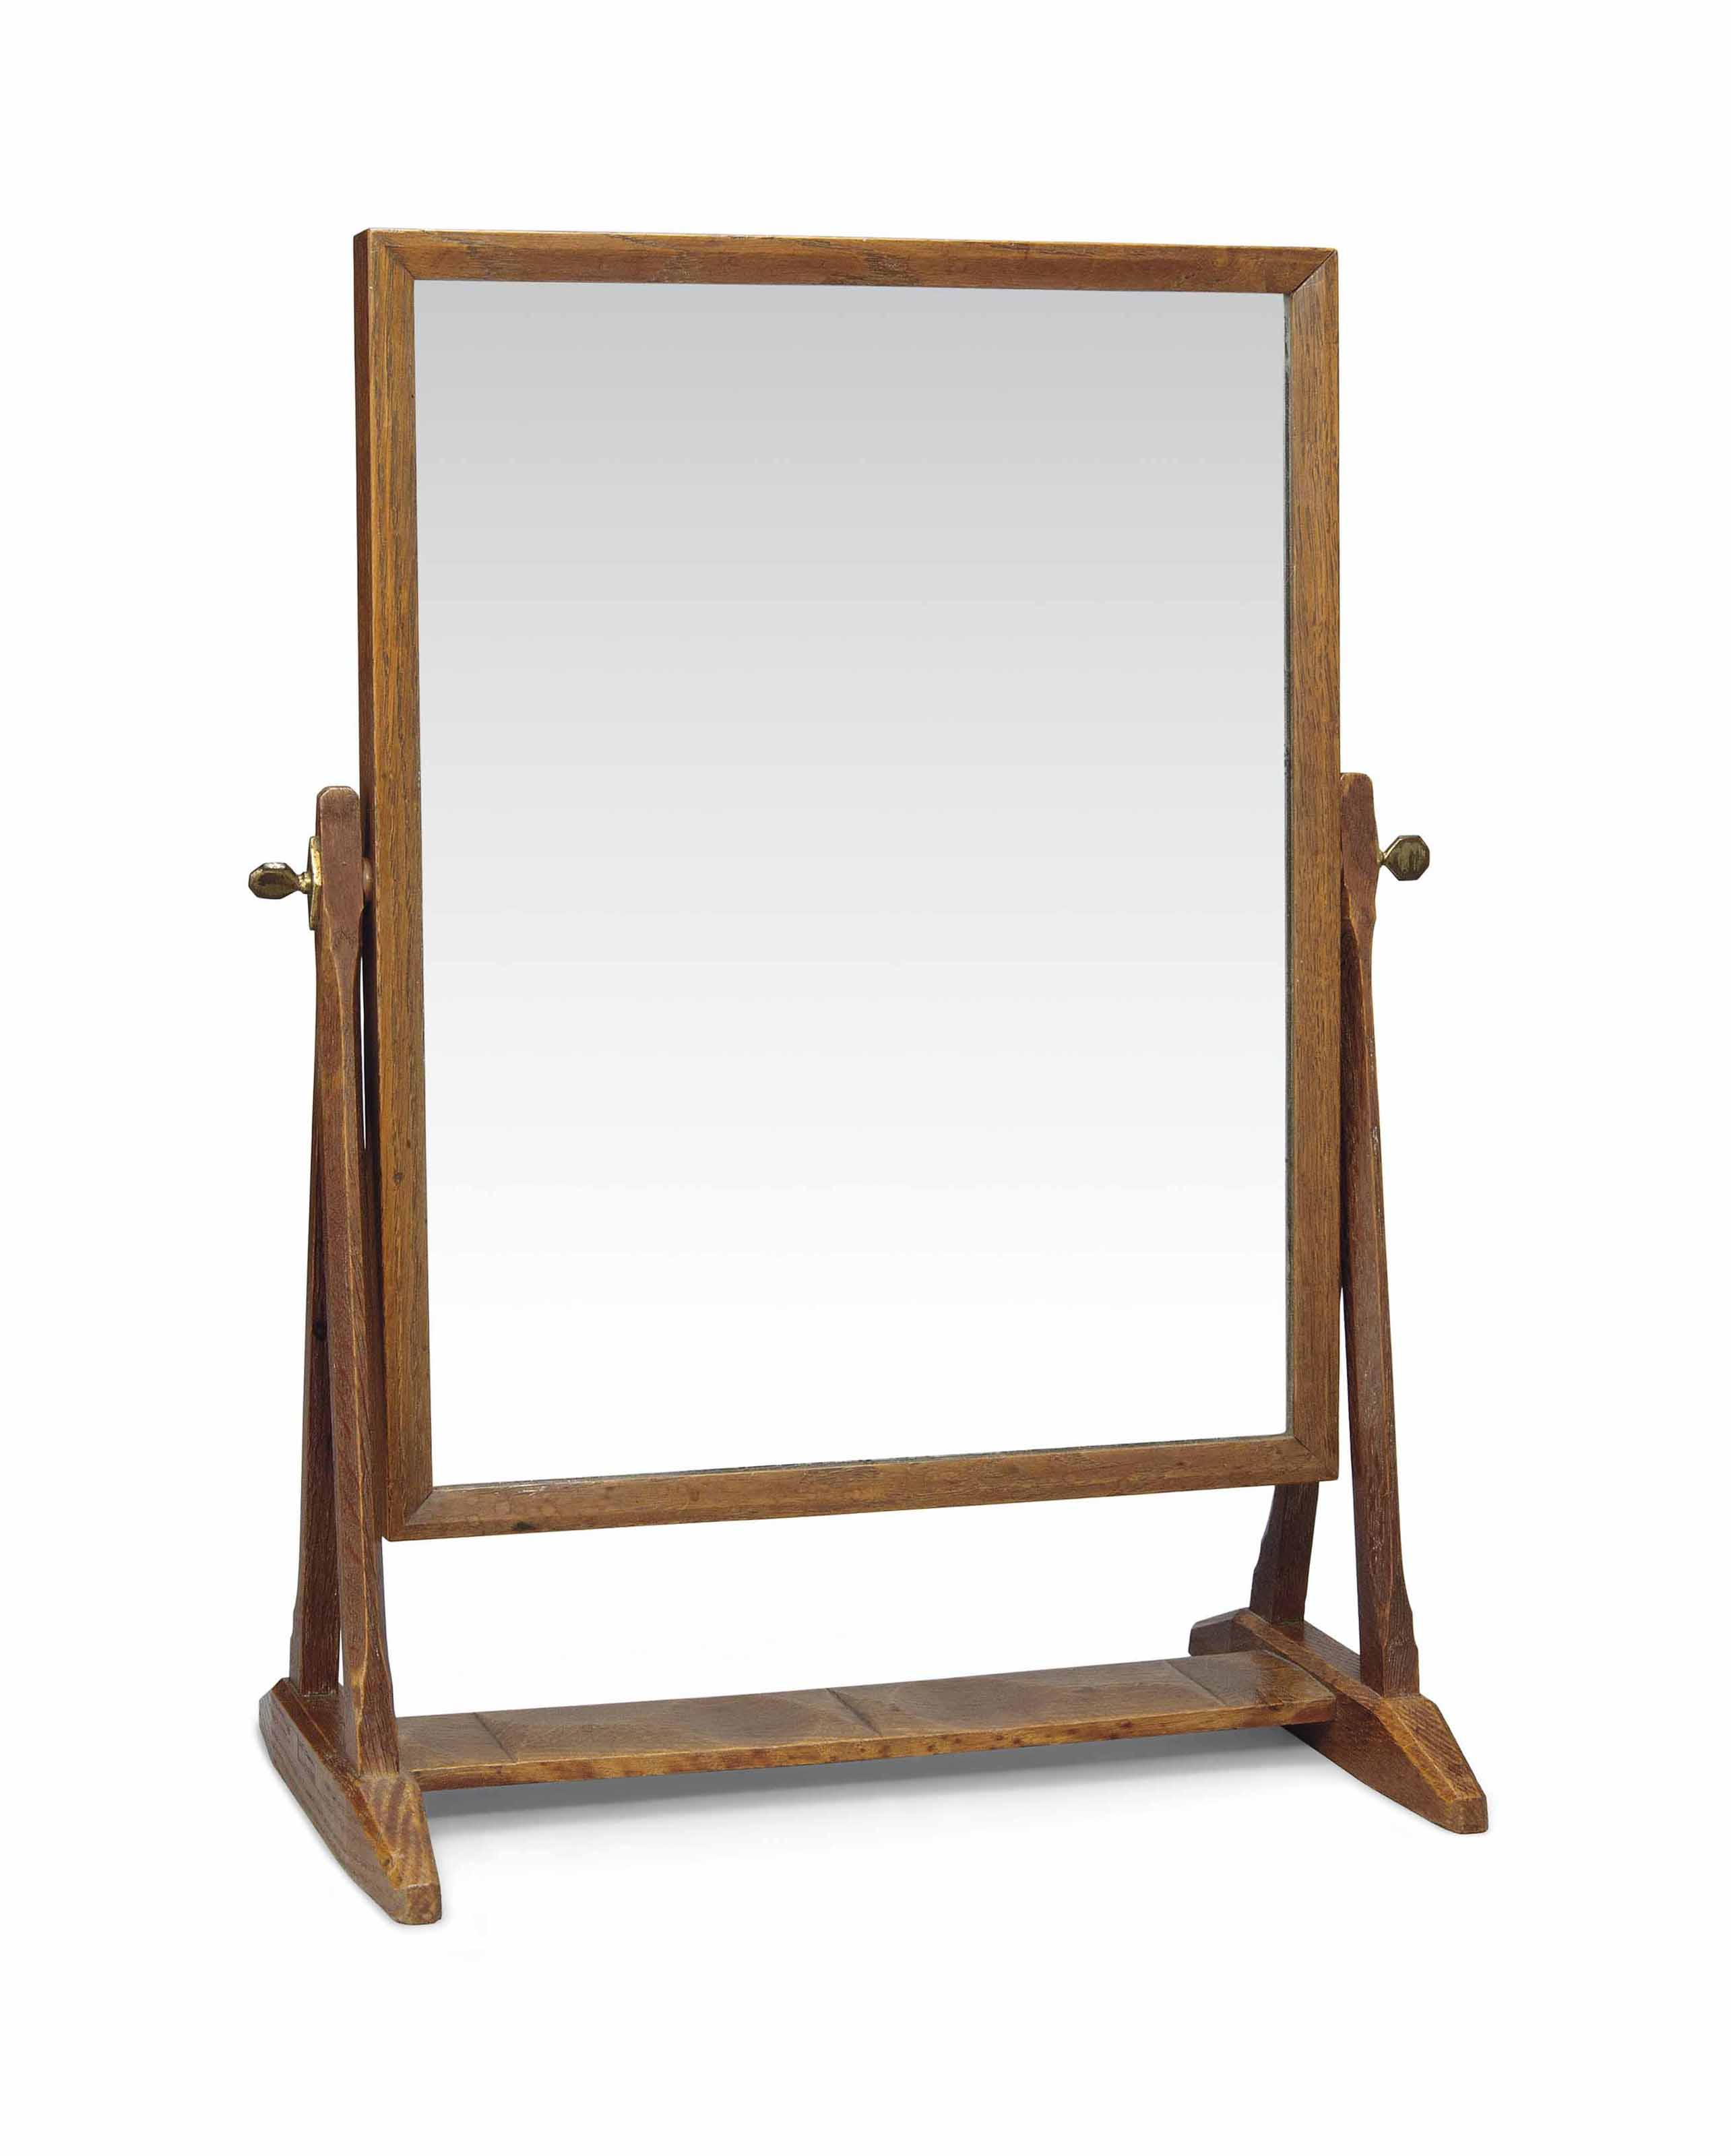 AN ARTS AND CRAFTS OAK DRESSING TABLE MIRROR